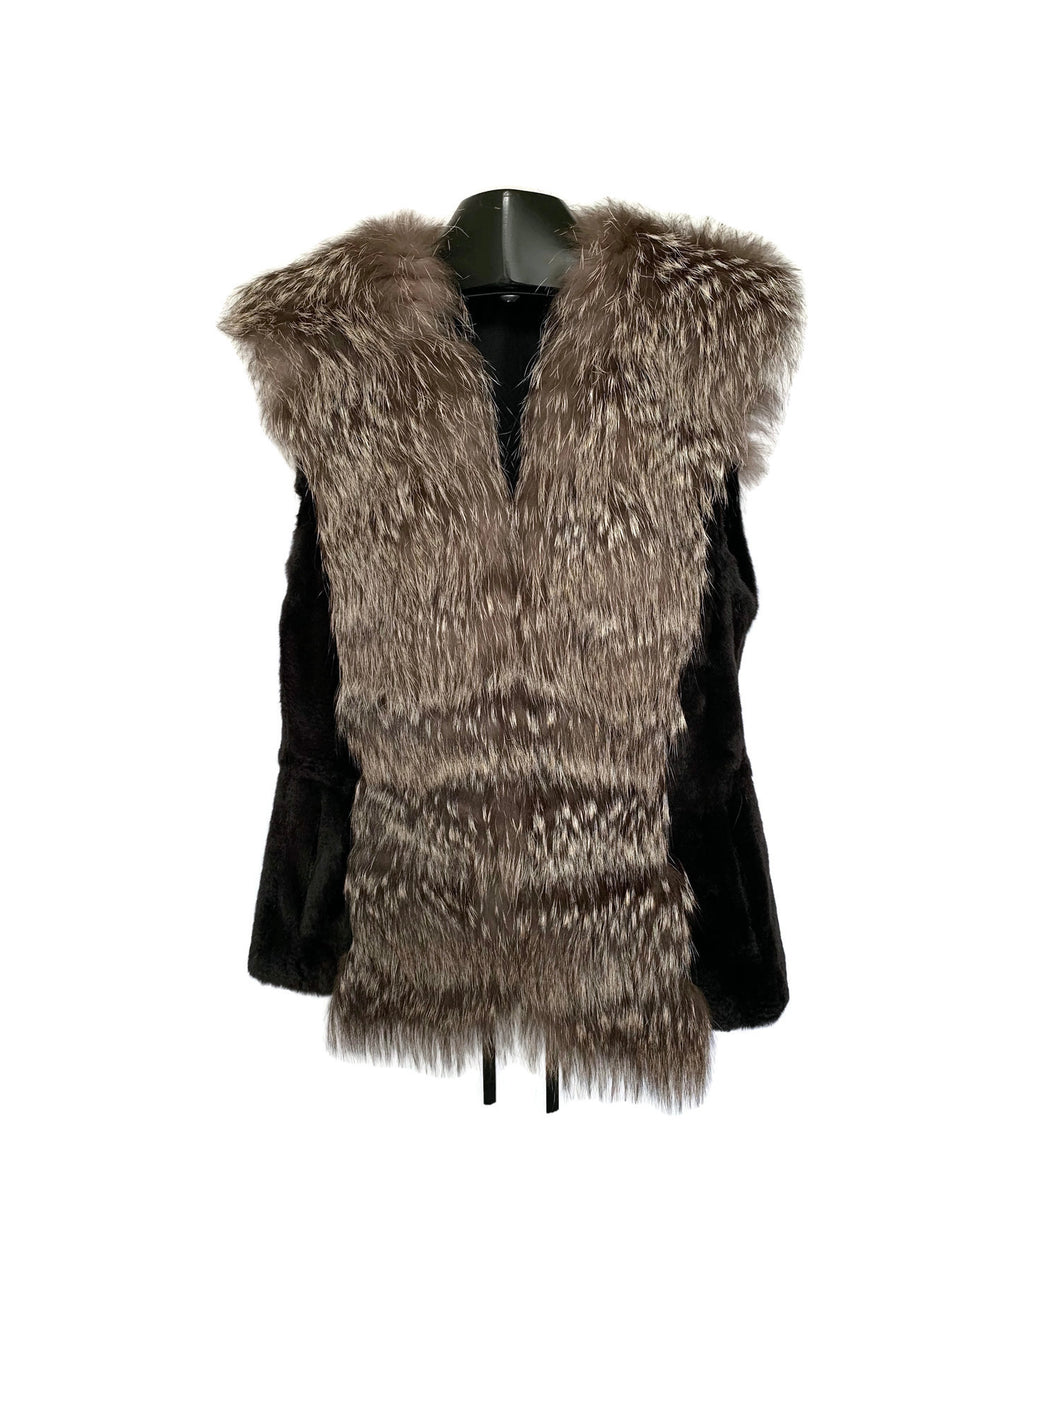 Black Rabbit Vest W/ Silver Fox Trim